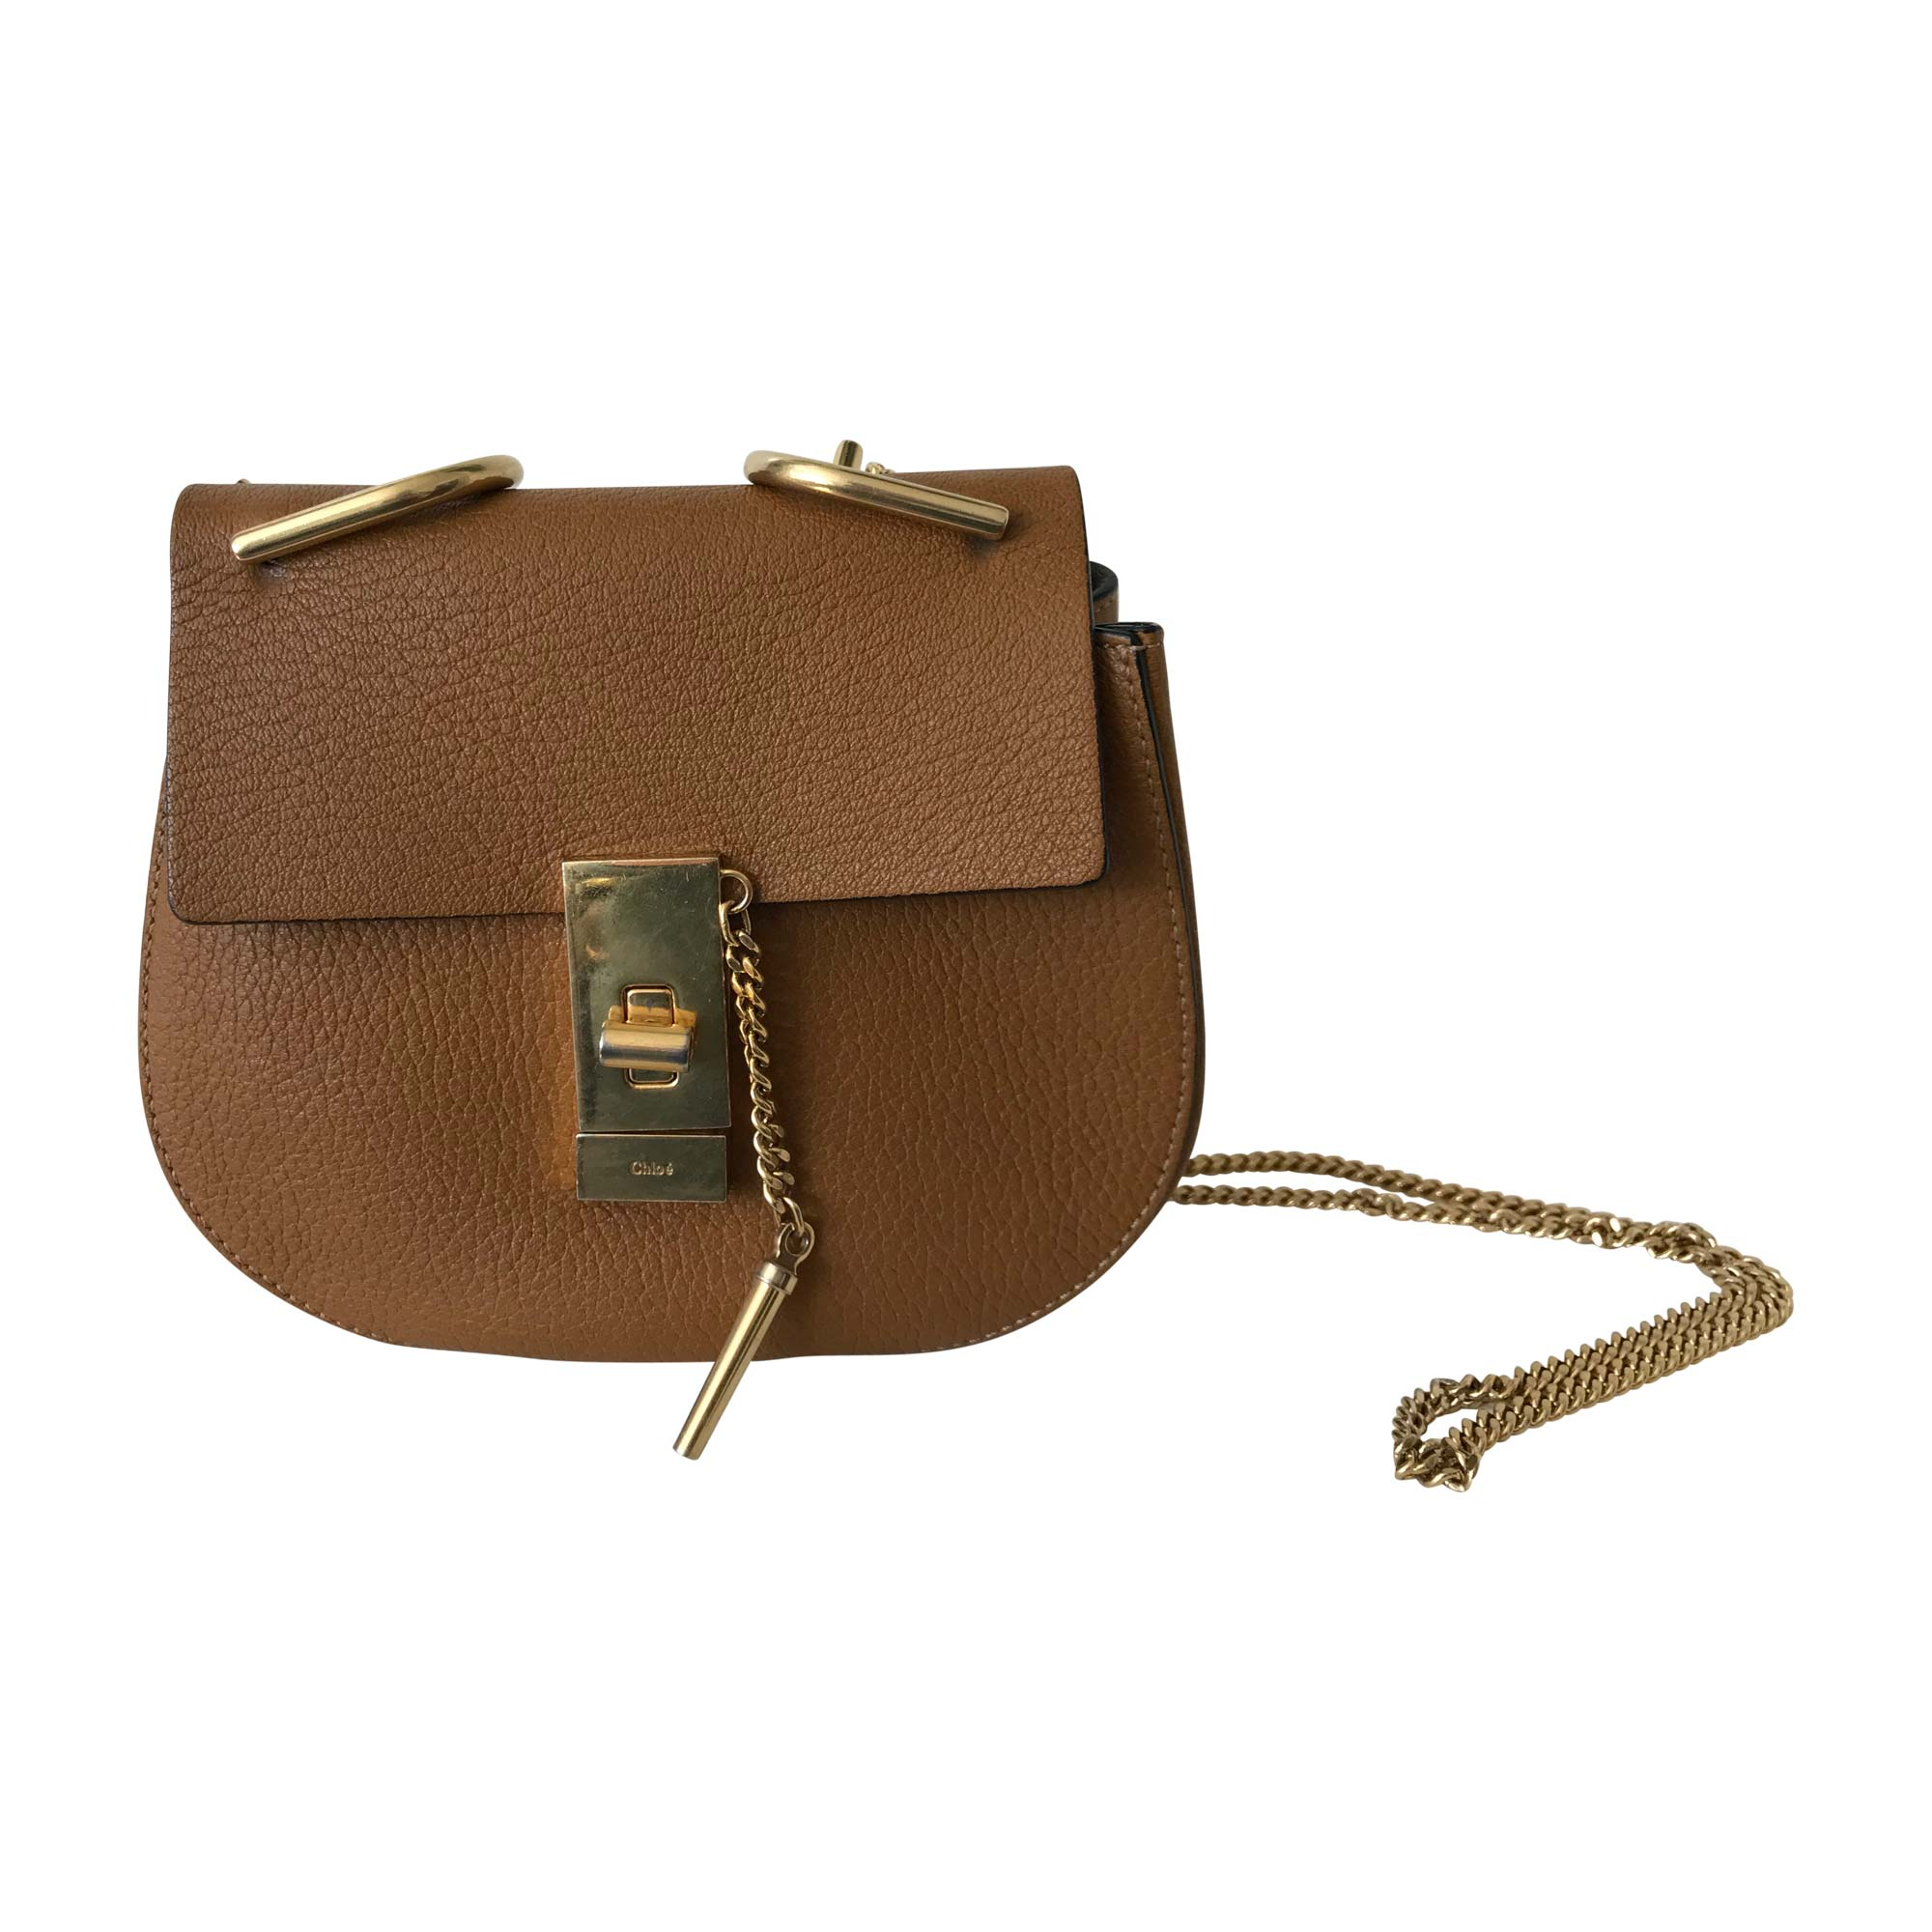 Leather Shoulder Bag CHLOÉ Drew Beige, camel